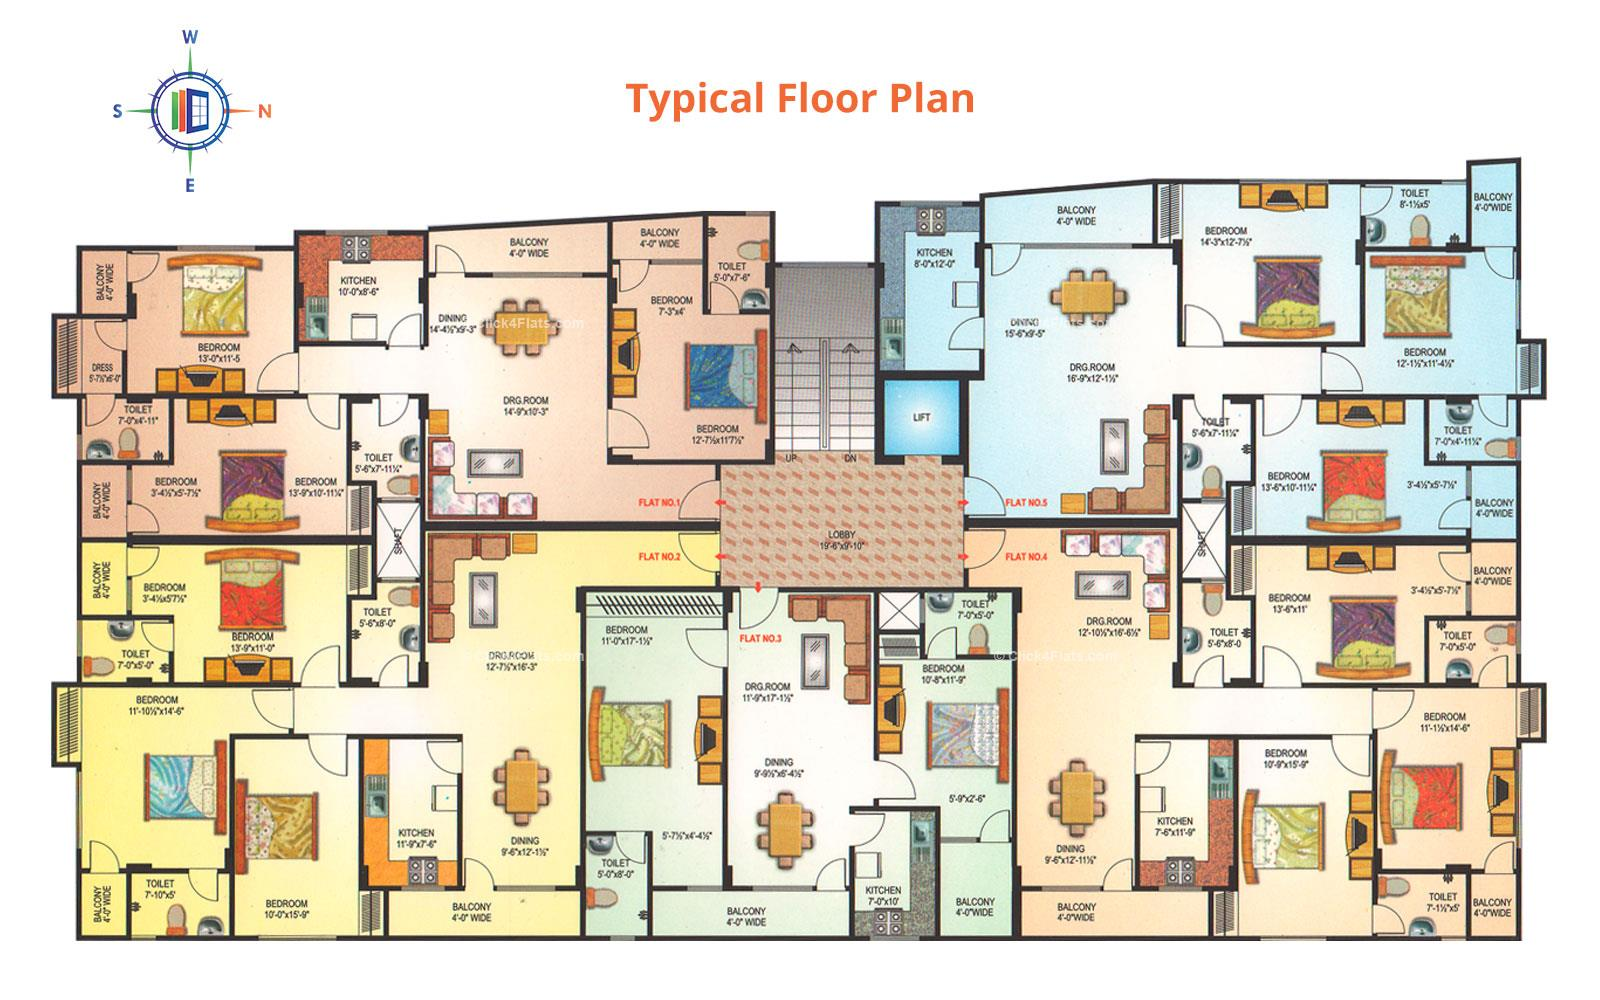 Nakshatra Pride Typical Floor Plan